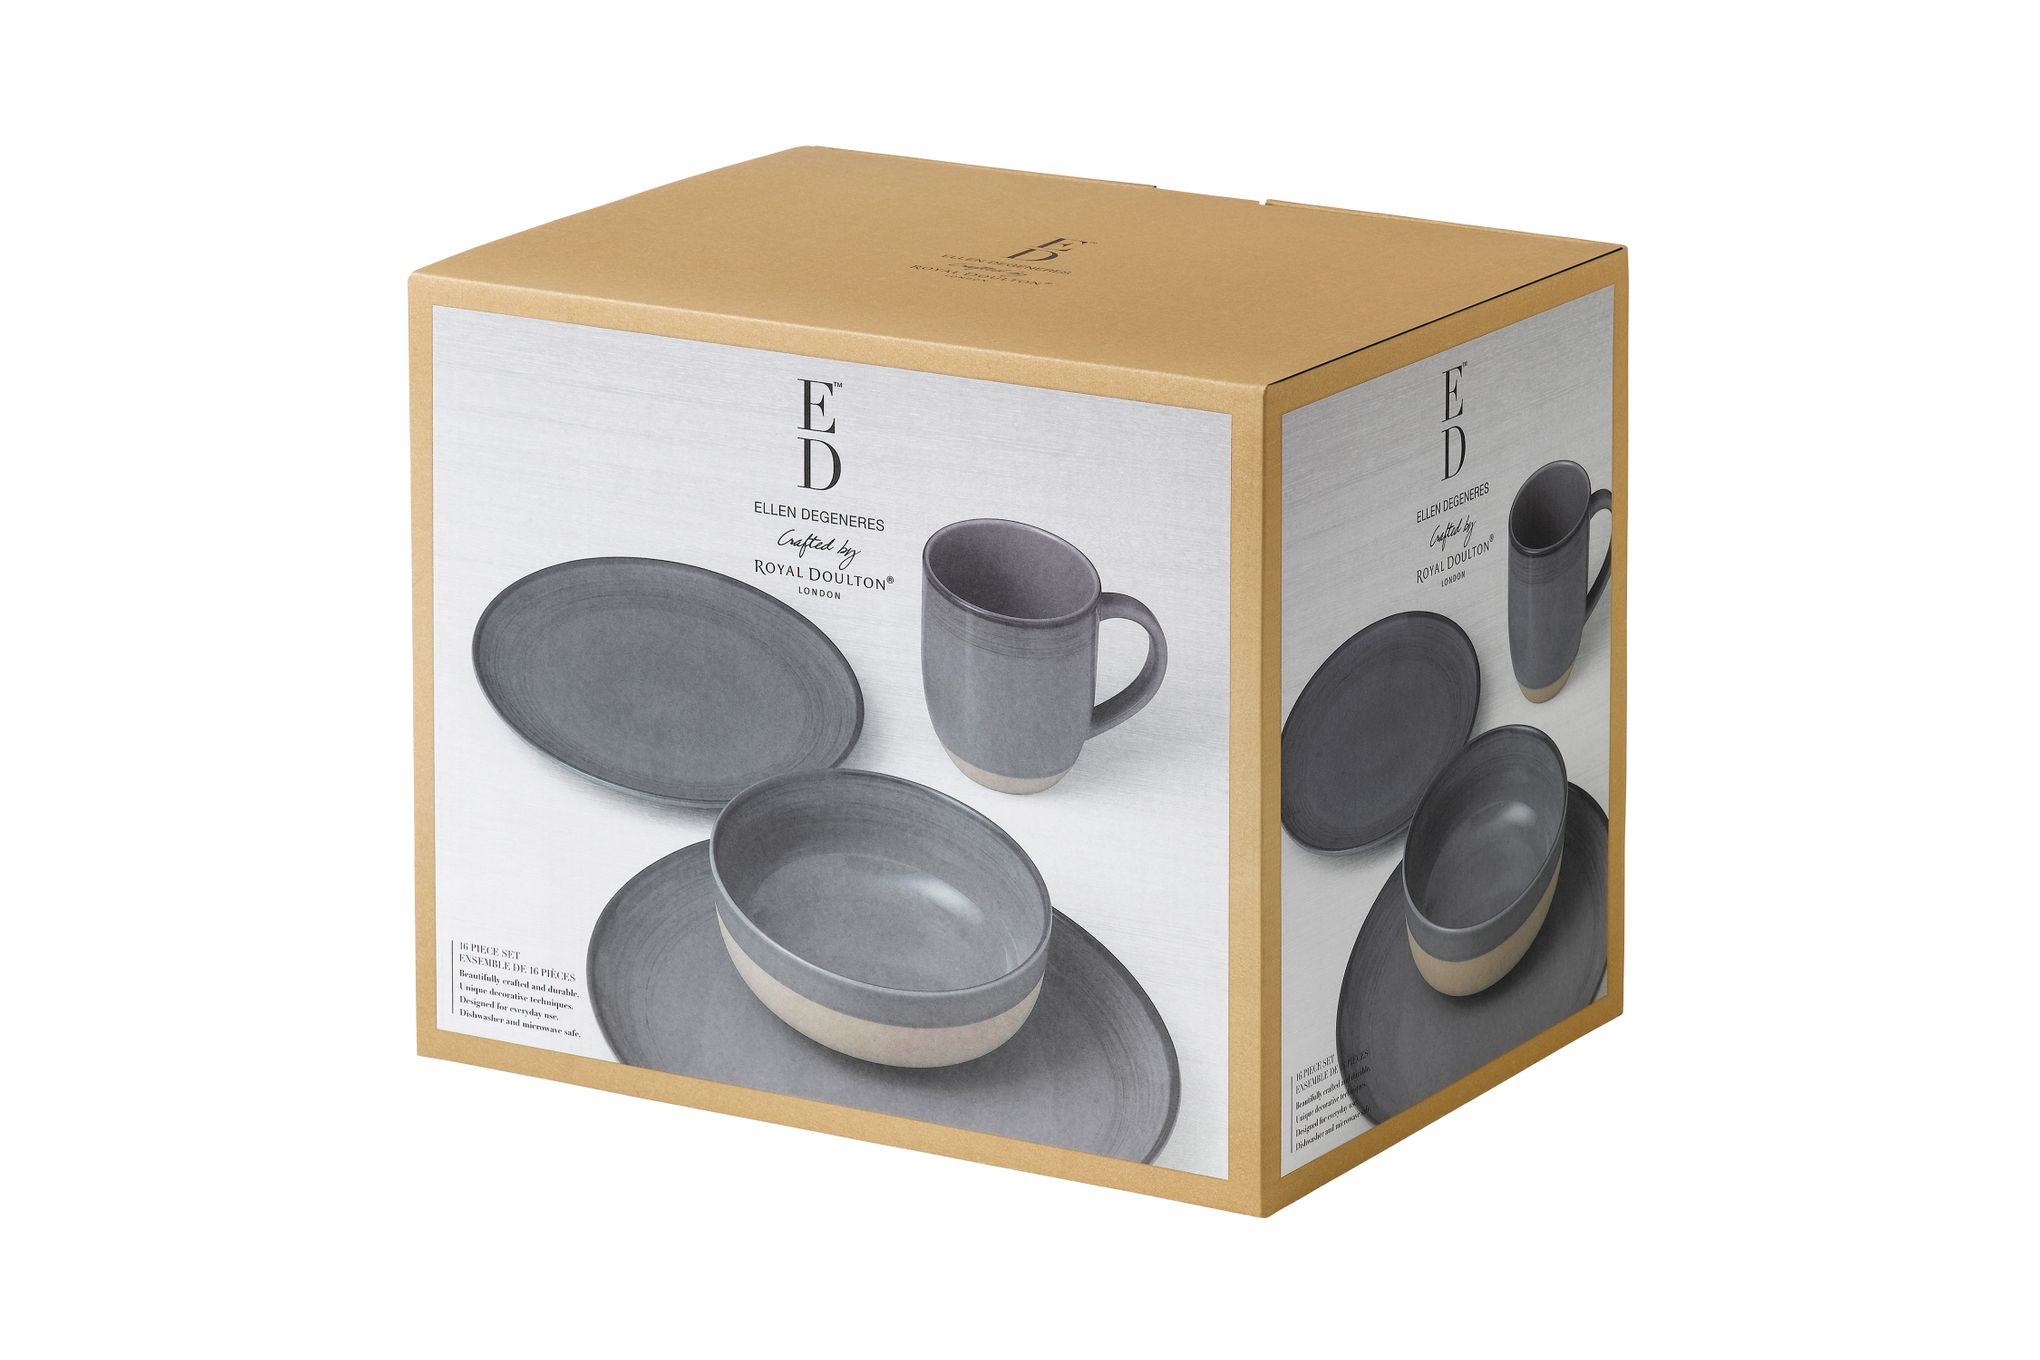 Ellen DeGeneres for Royal Doulton Brushed Glaze Sets 16 Piece Set Grey thumb 2